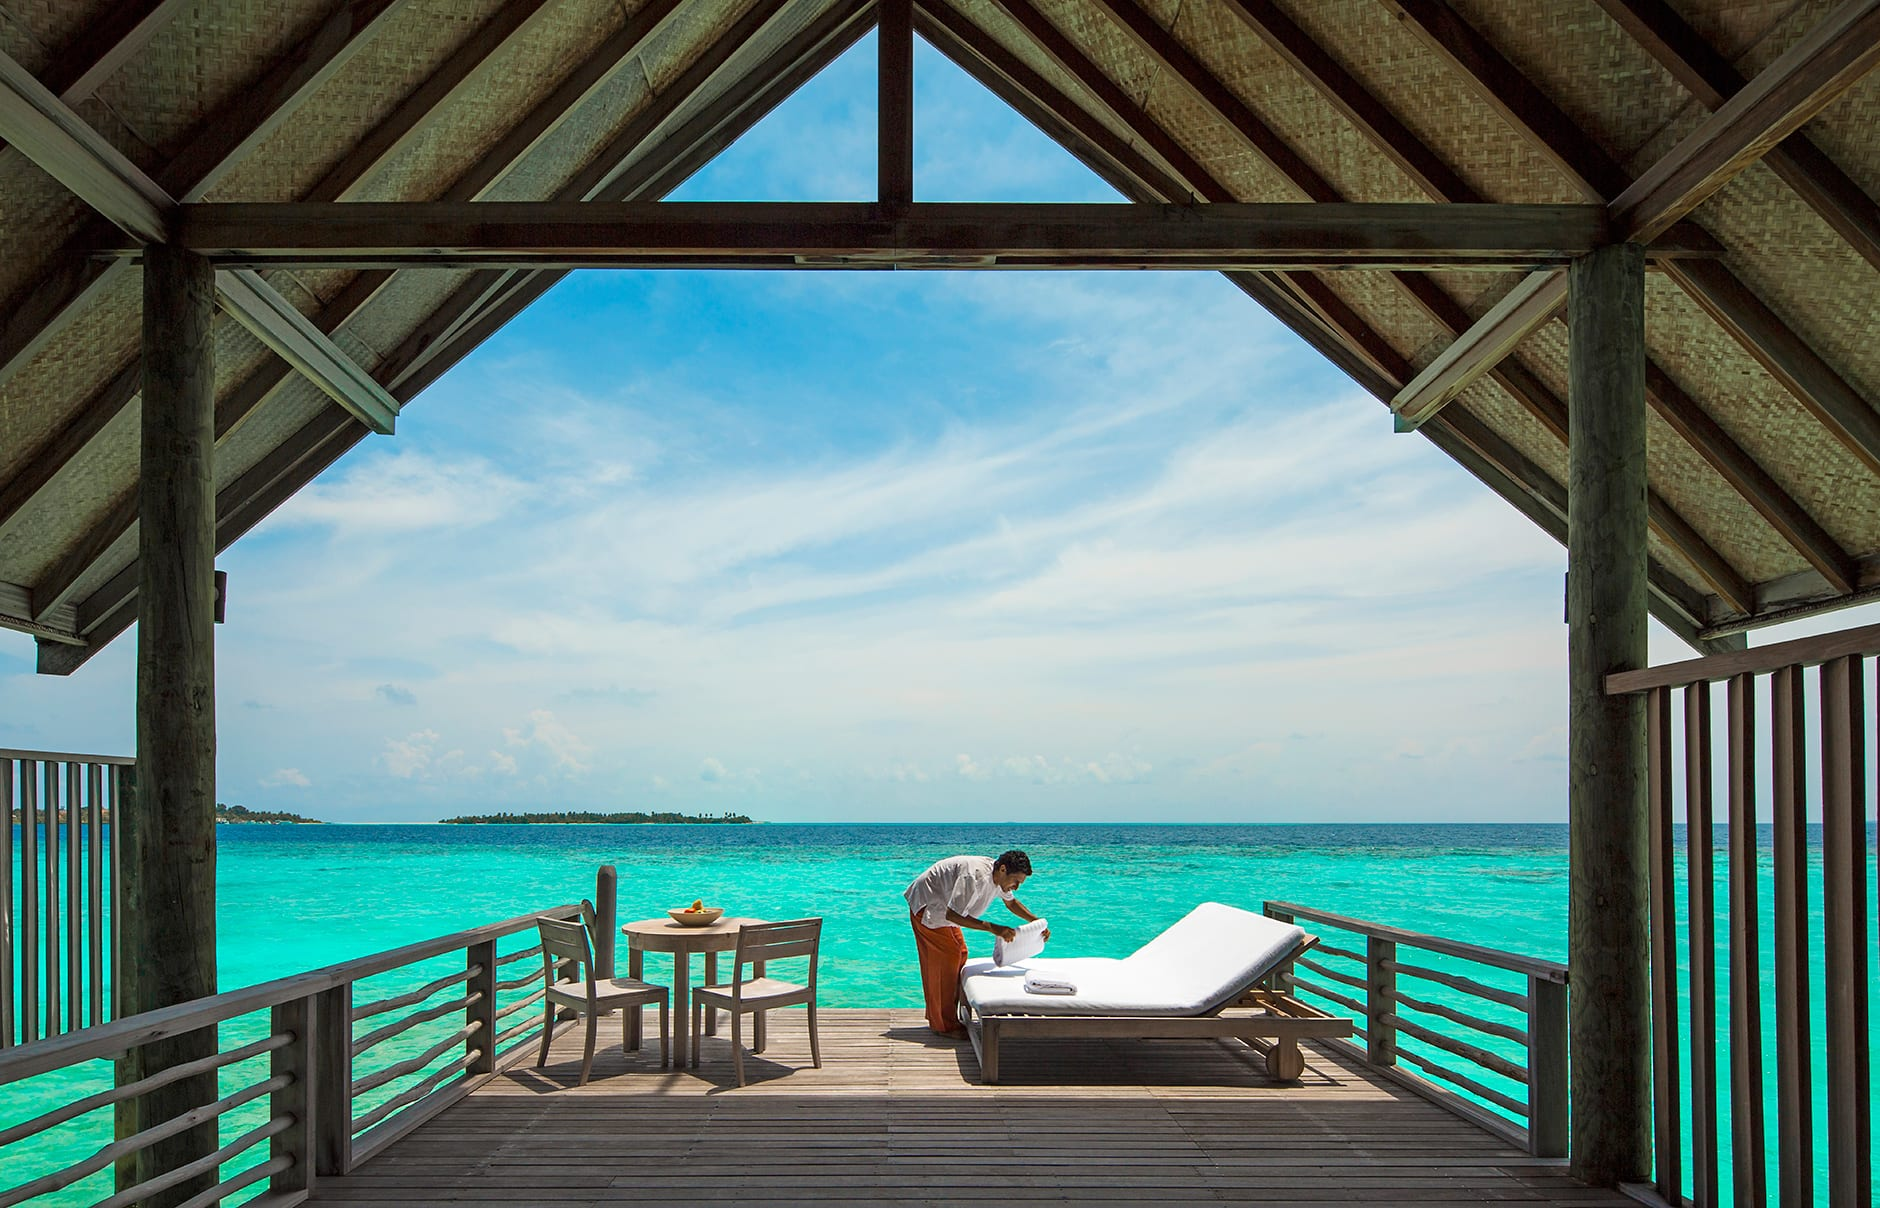 Loft Villa. Cocoa Island - Maldives. © COMO Hotels and Resorts